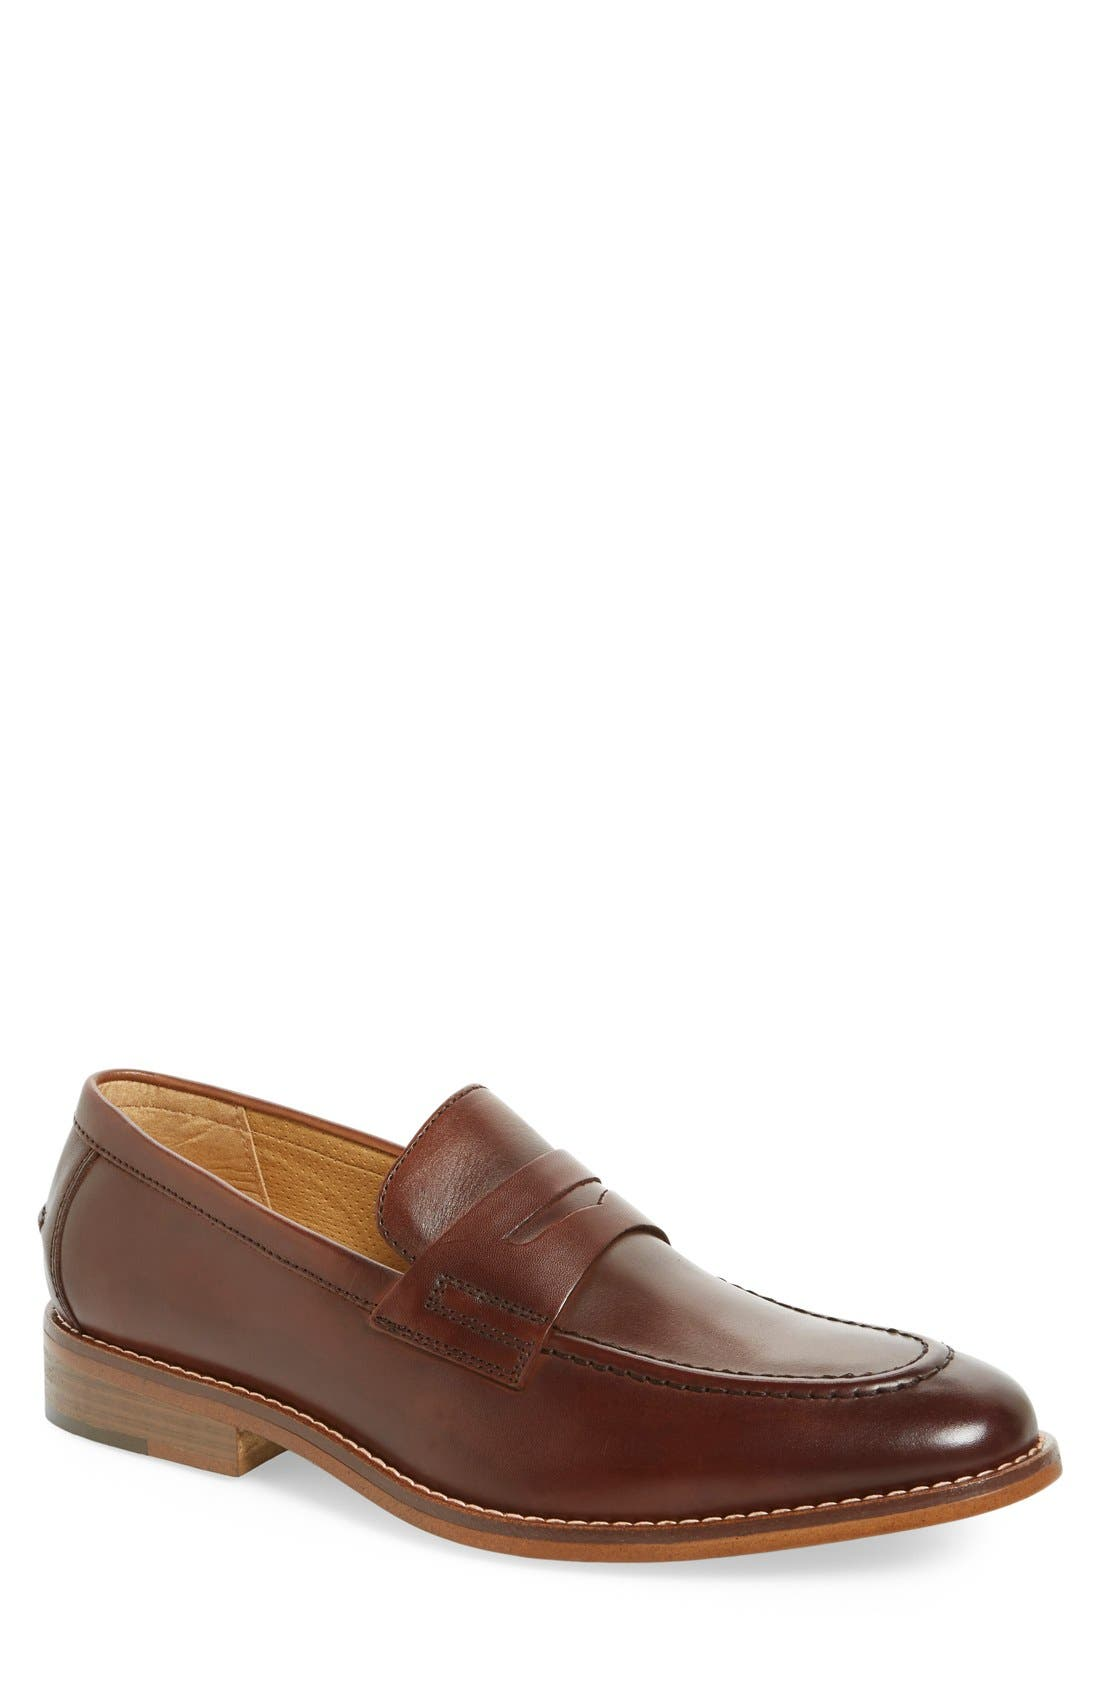 'Conner' Penny Loafer,                             Main thumbnail 1, color,                             British Tan Leather